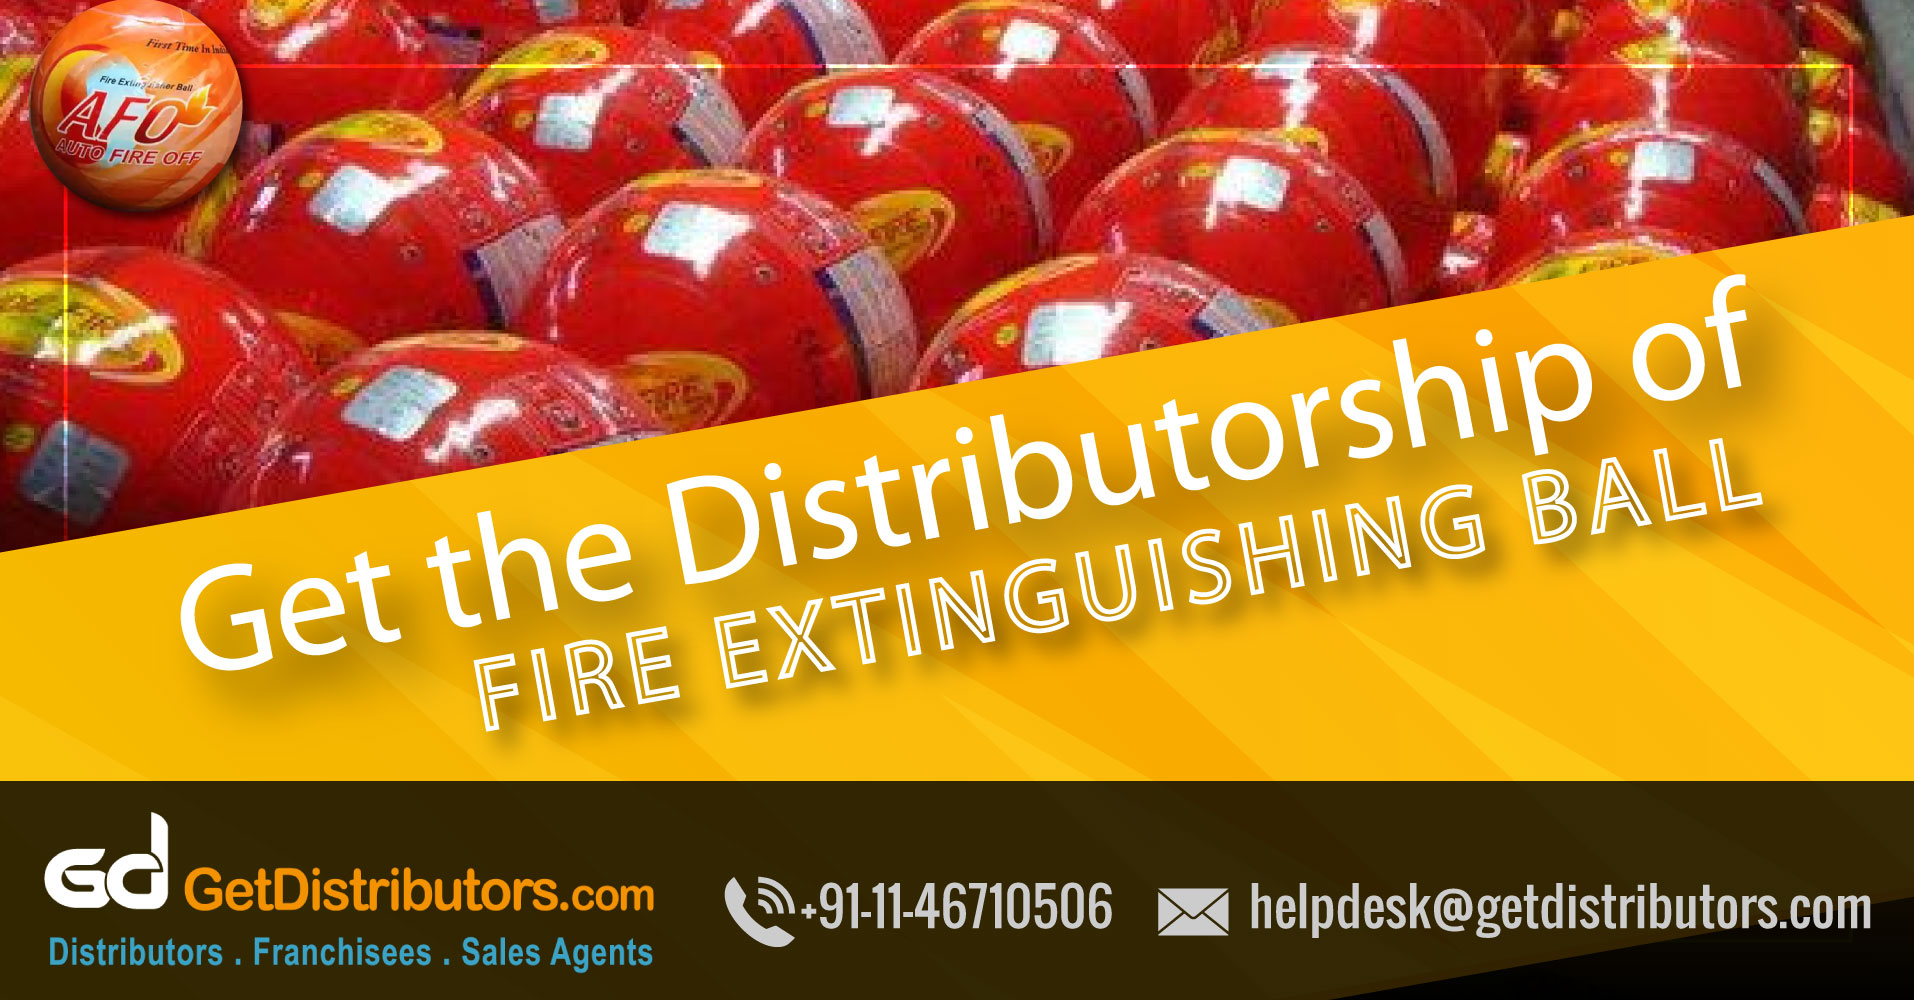 Easy To Handle AFO(Auto Fire Off) Fire Extinguisher Balls At Affordable Prices